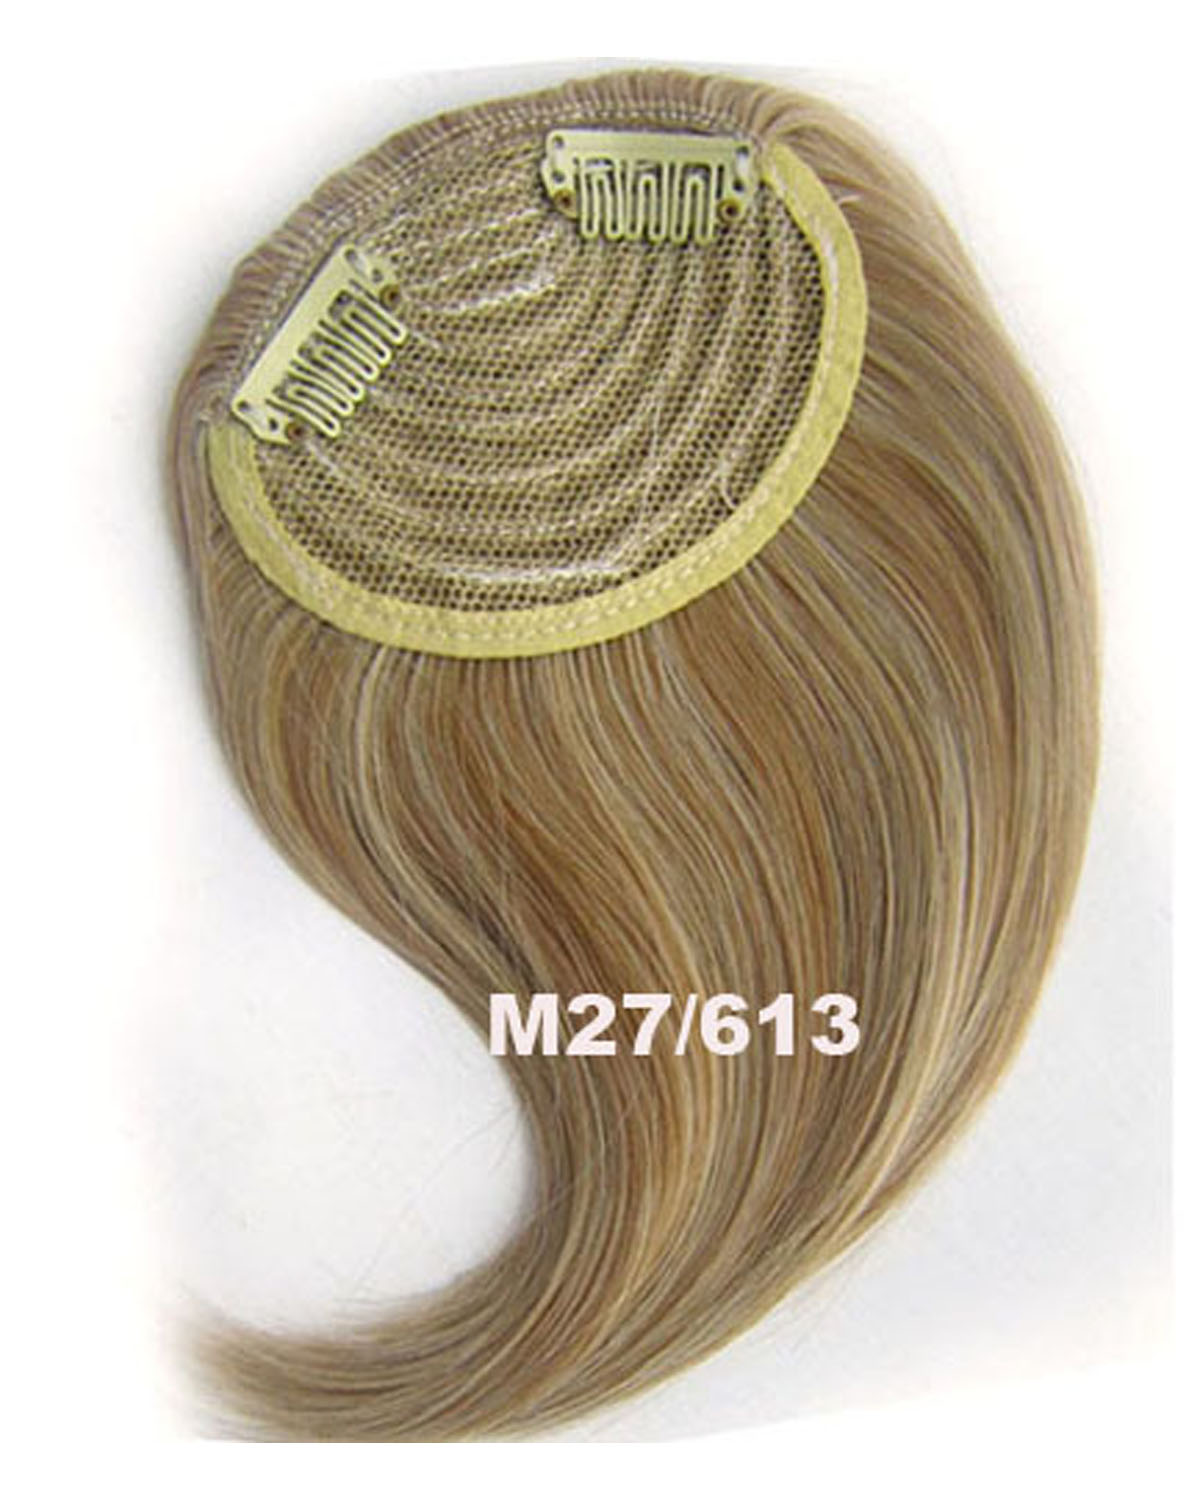 Girls Trendy  Straight Short Bangs Clip in Synthetic Hair Extension Fringe Bangs Hairpiece M27/613#